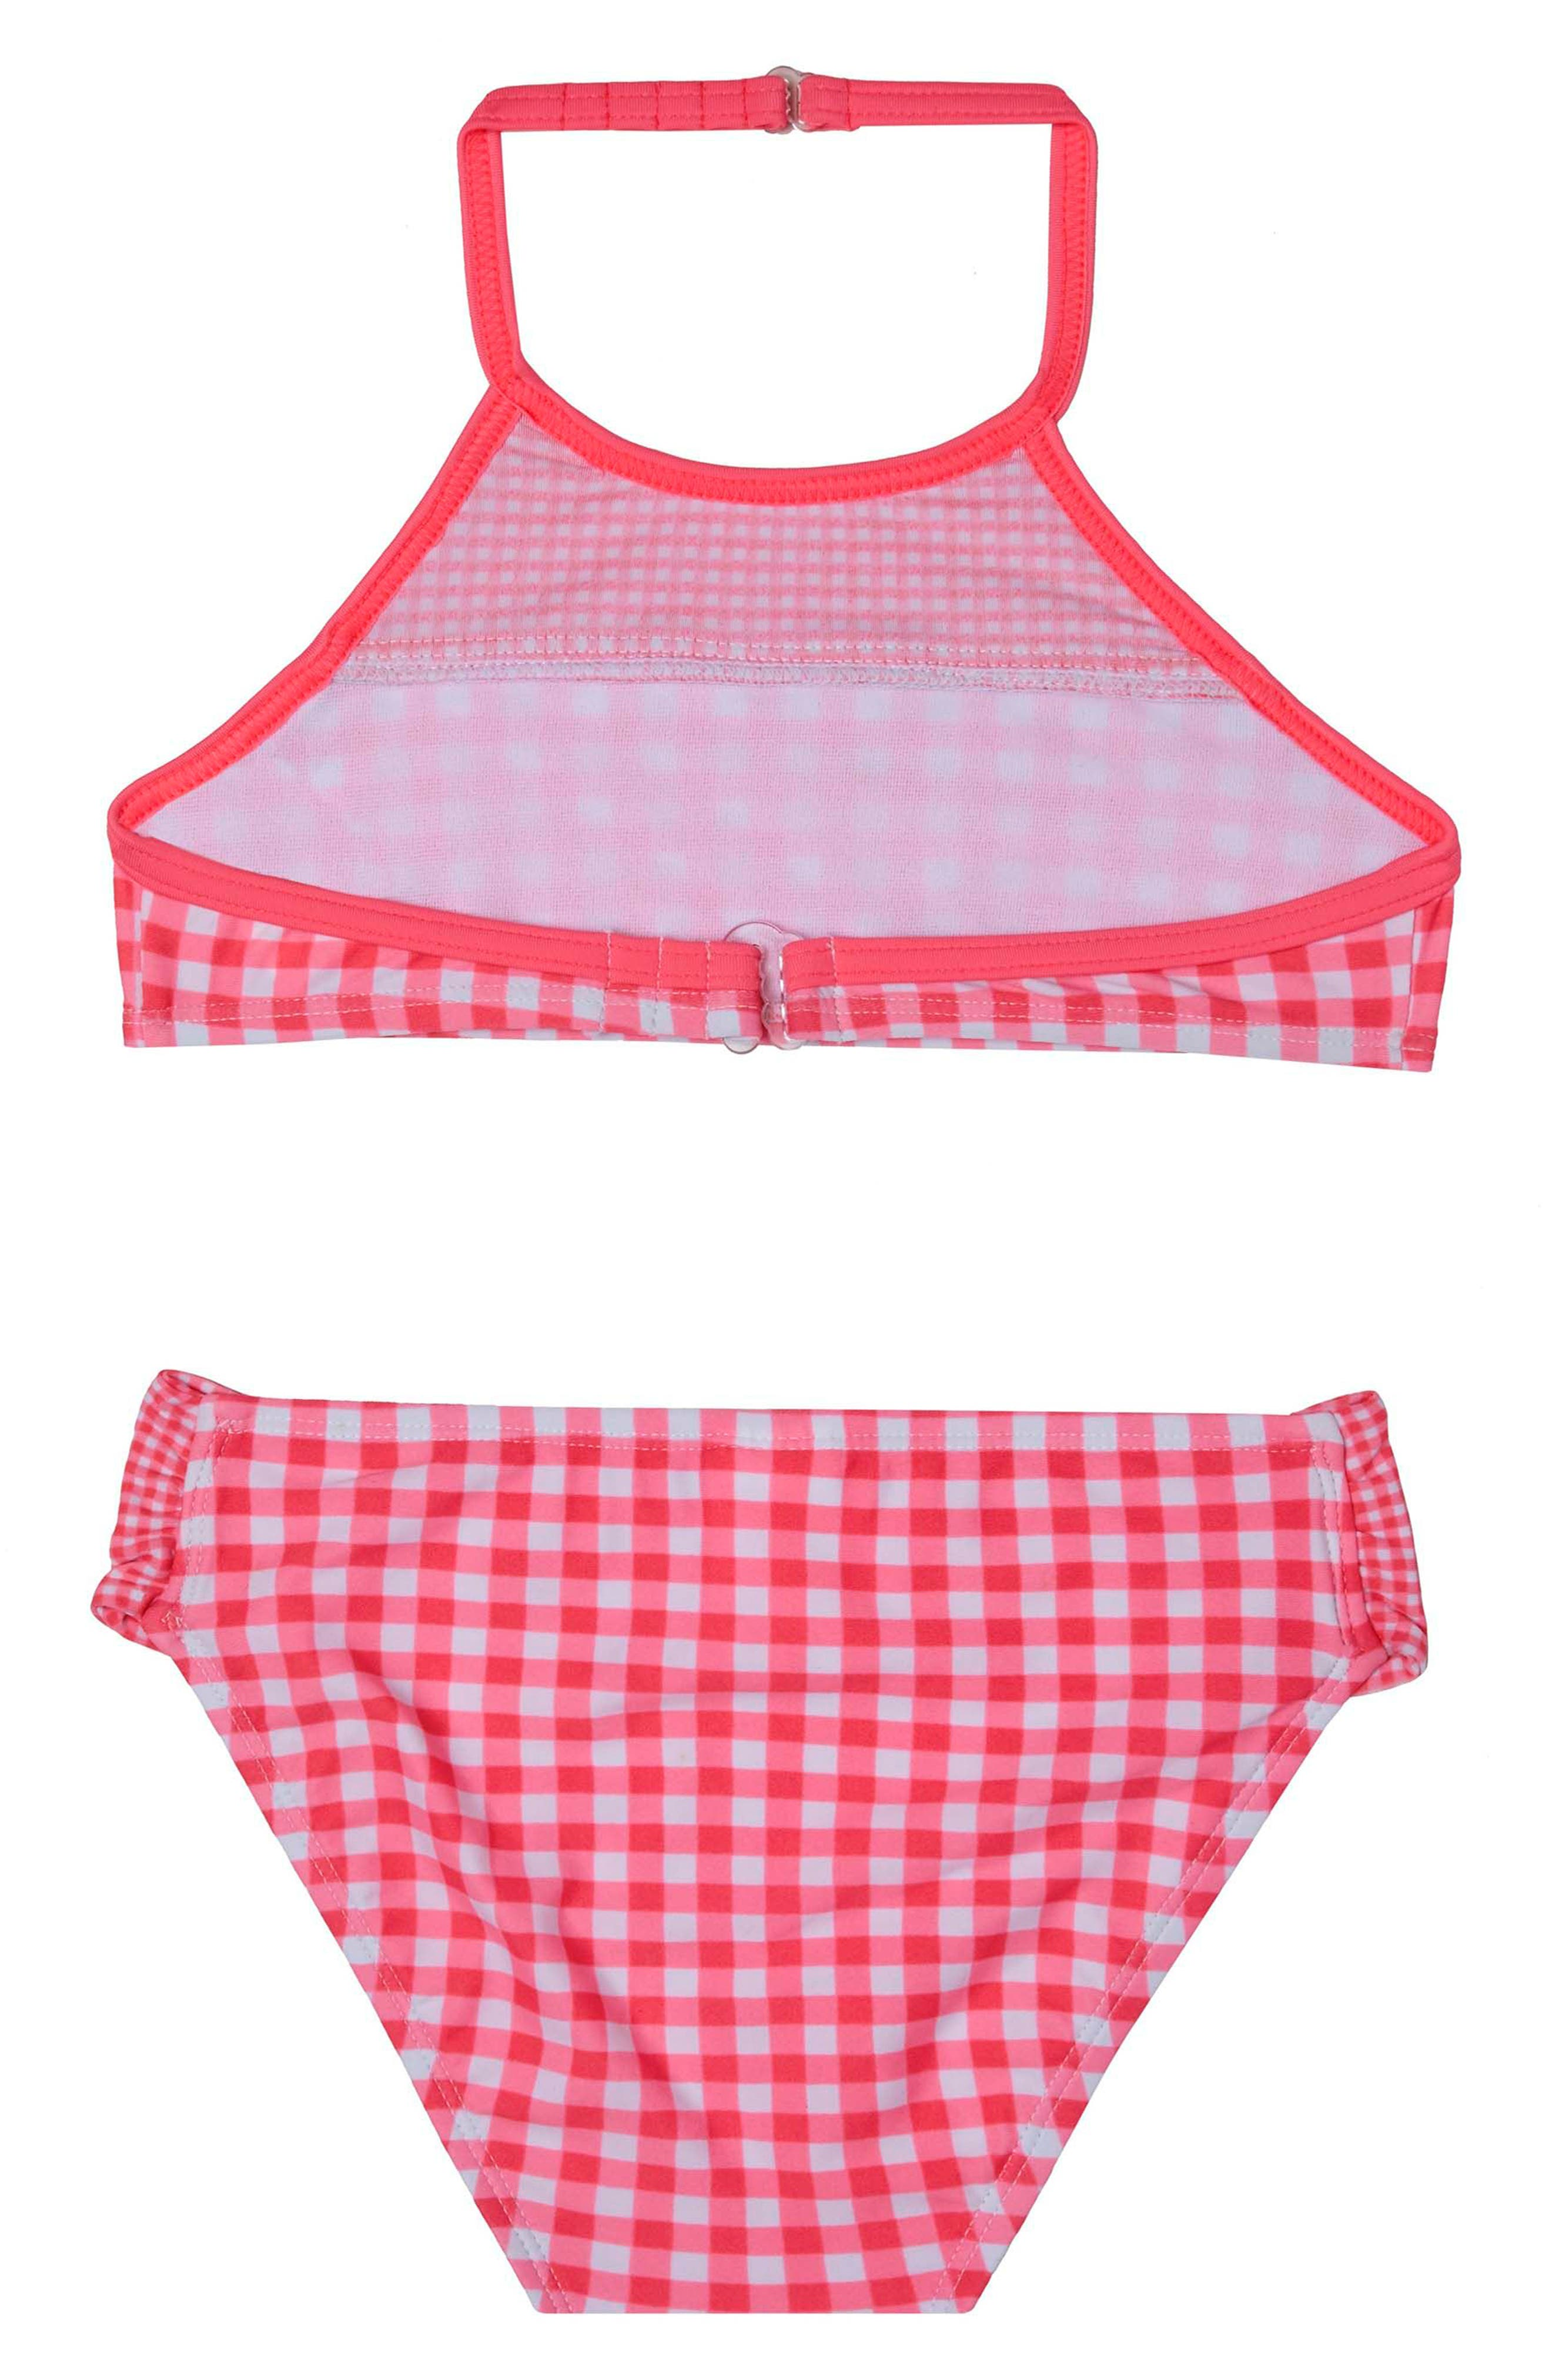 Picnic Gingham Two-Piece Swimsuit,                             Main thumbnail 1, color,                             621